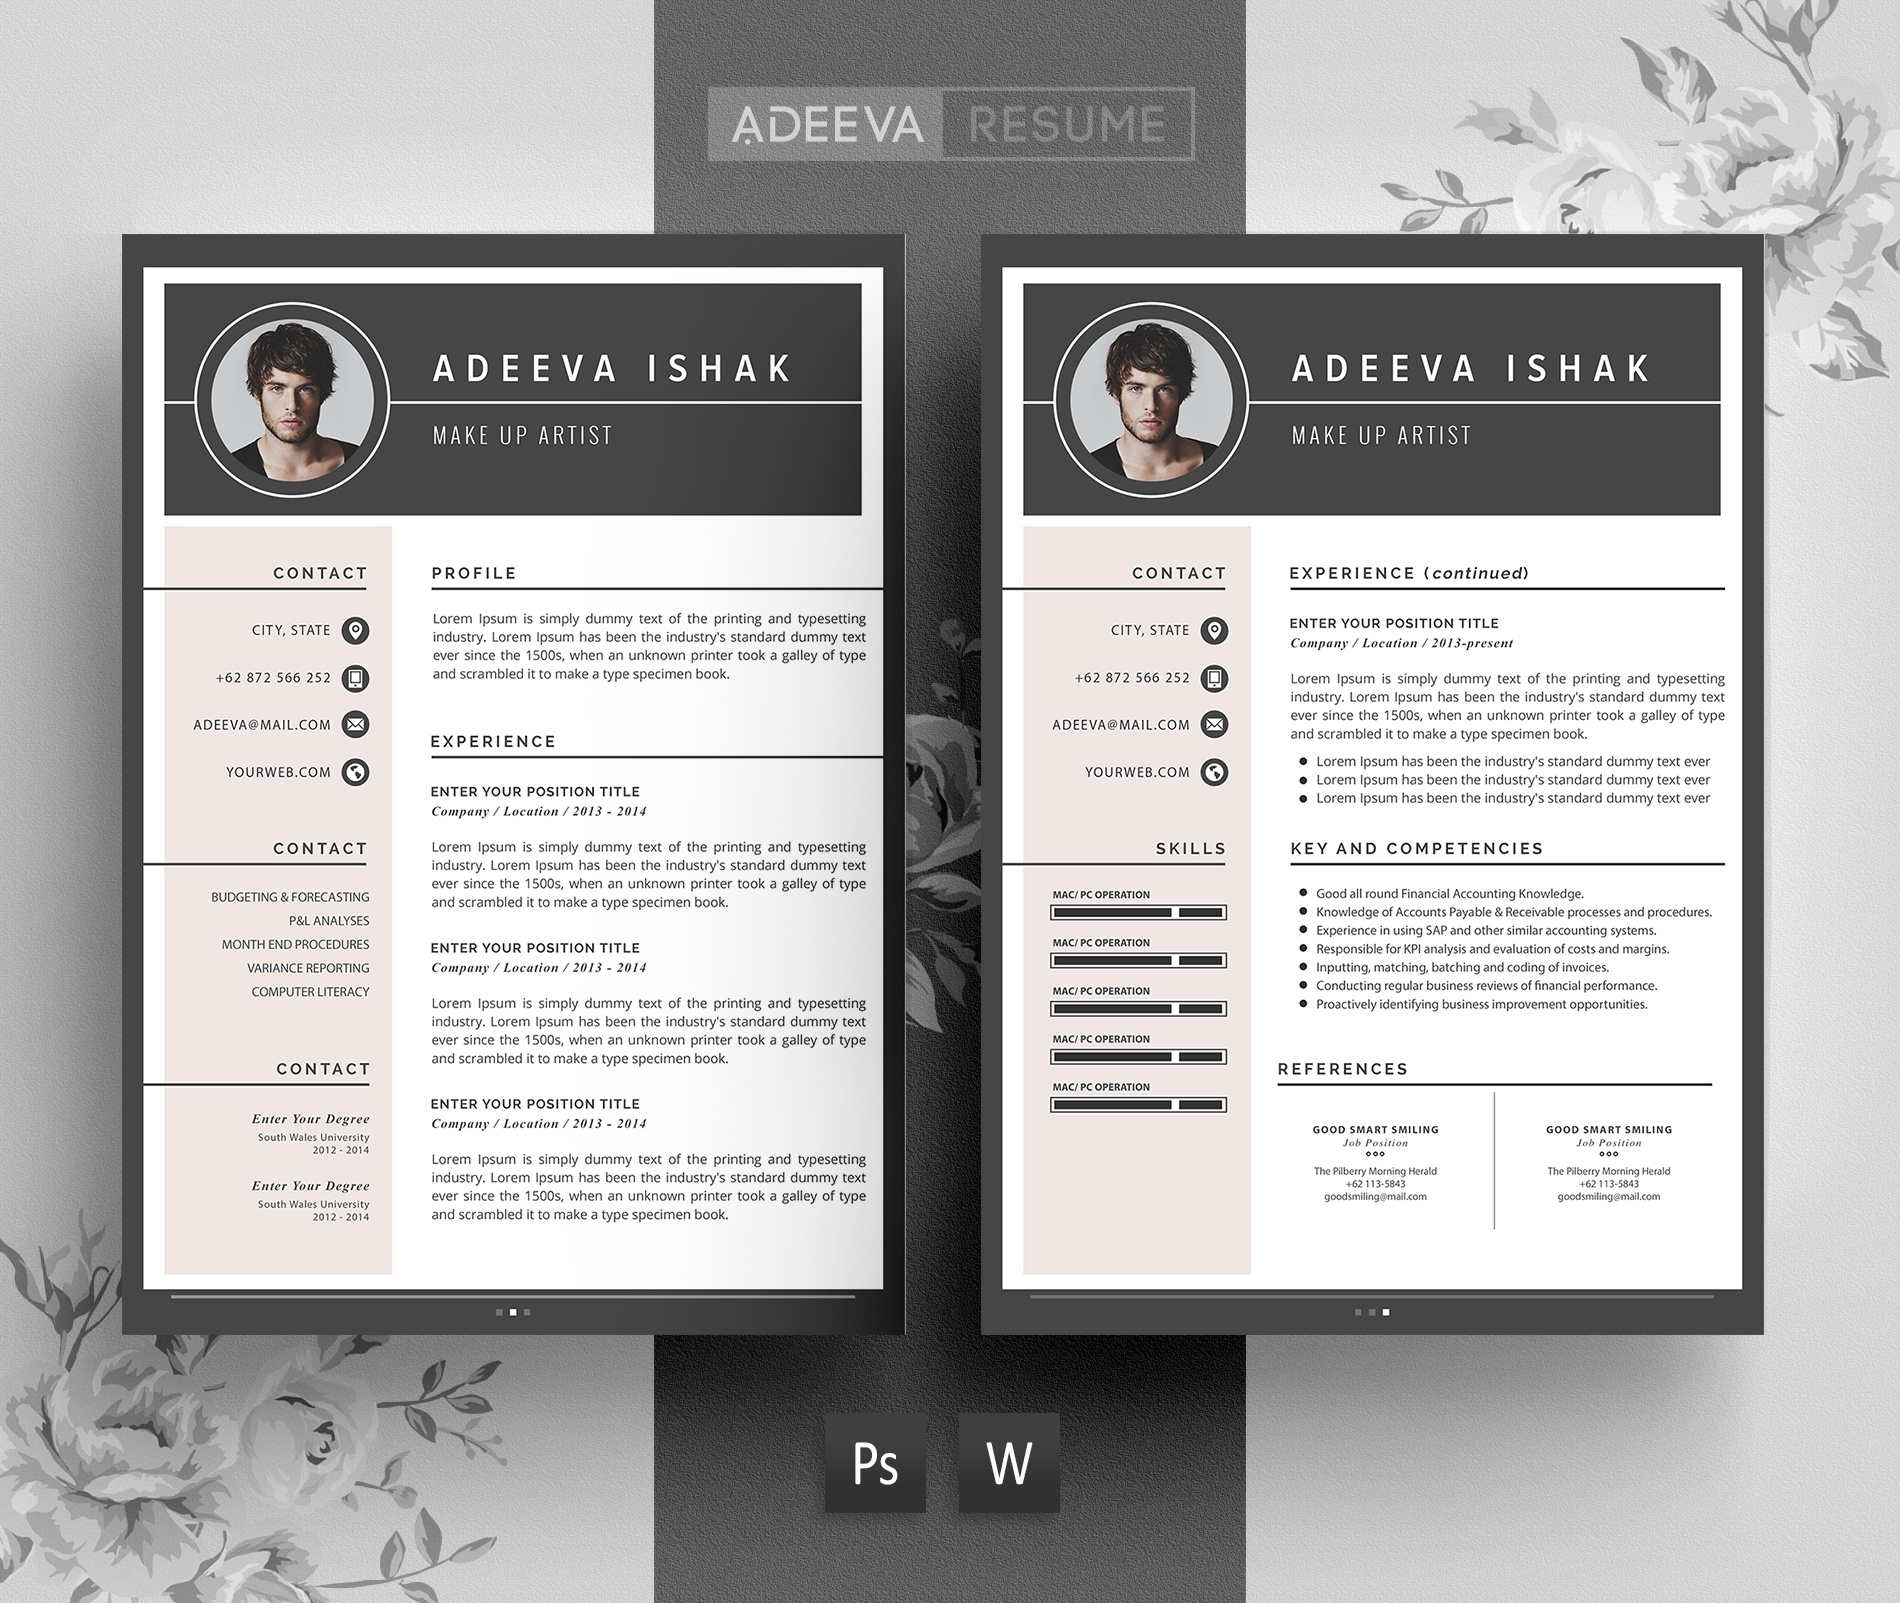 Professional Resume Templates Free: Professional Resume Template / CV Template